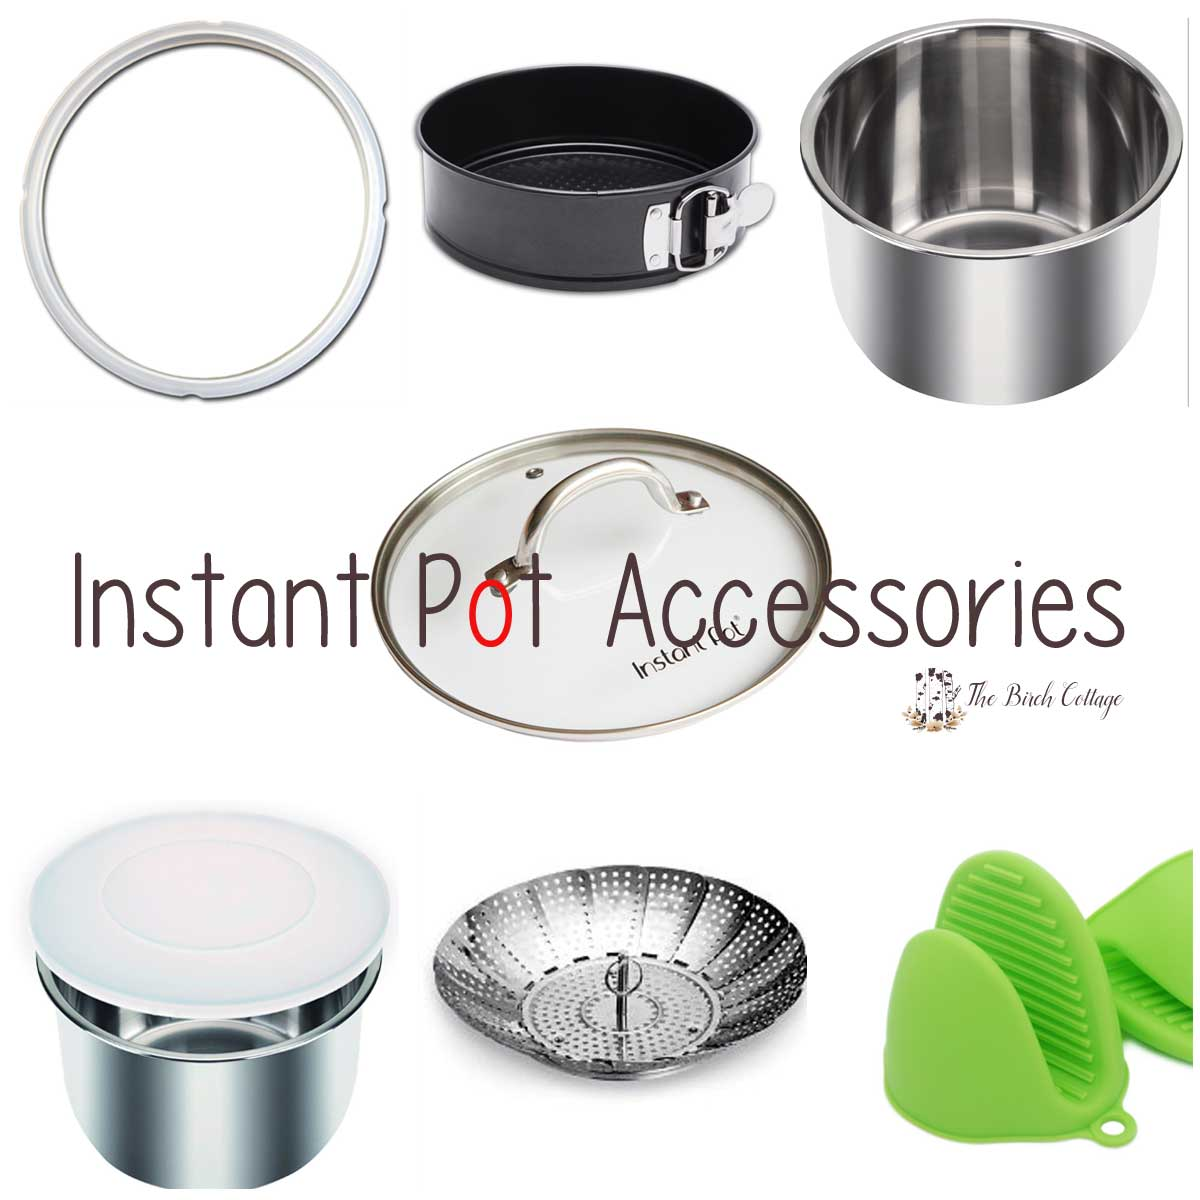 Recommended accessories for the Instant Pot